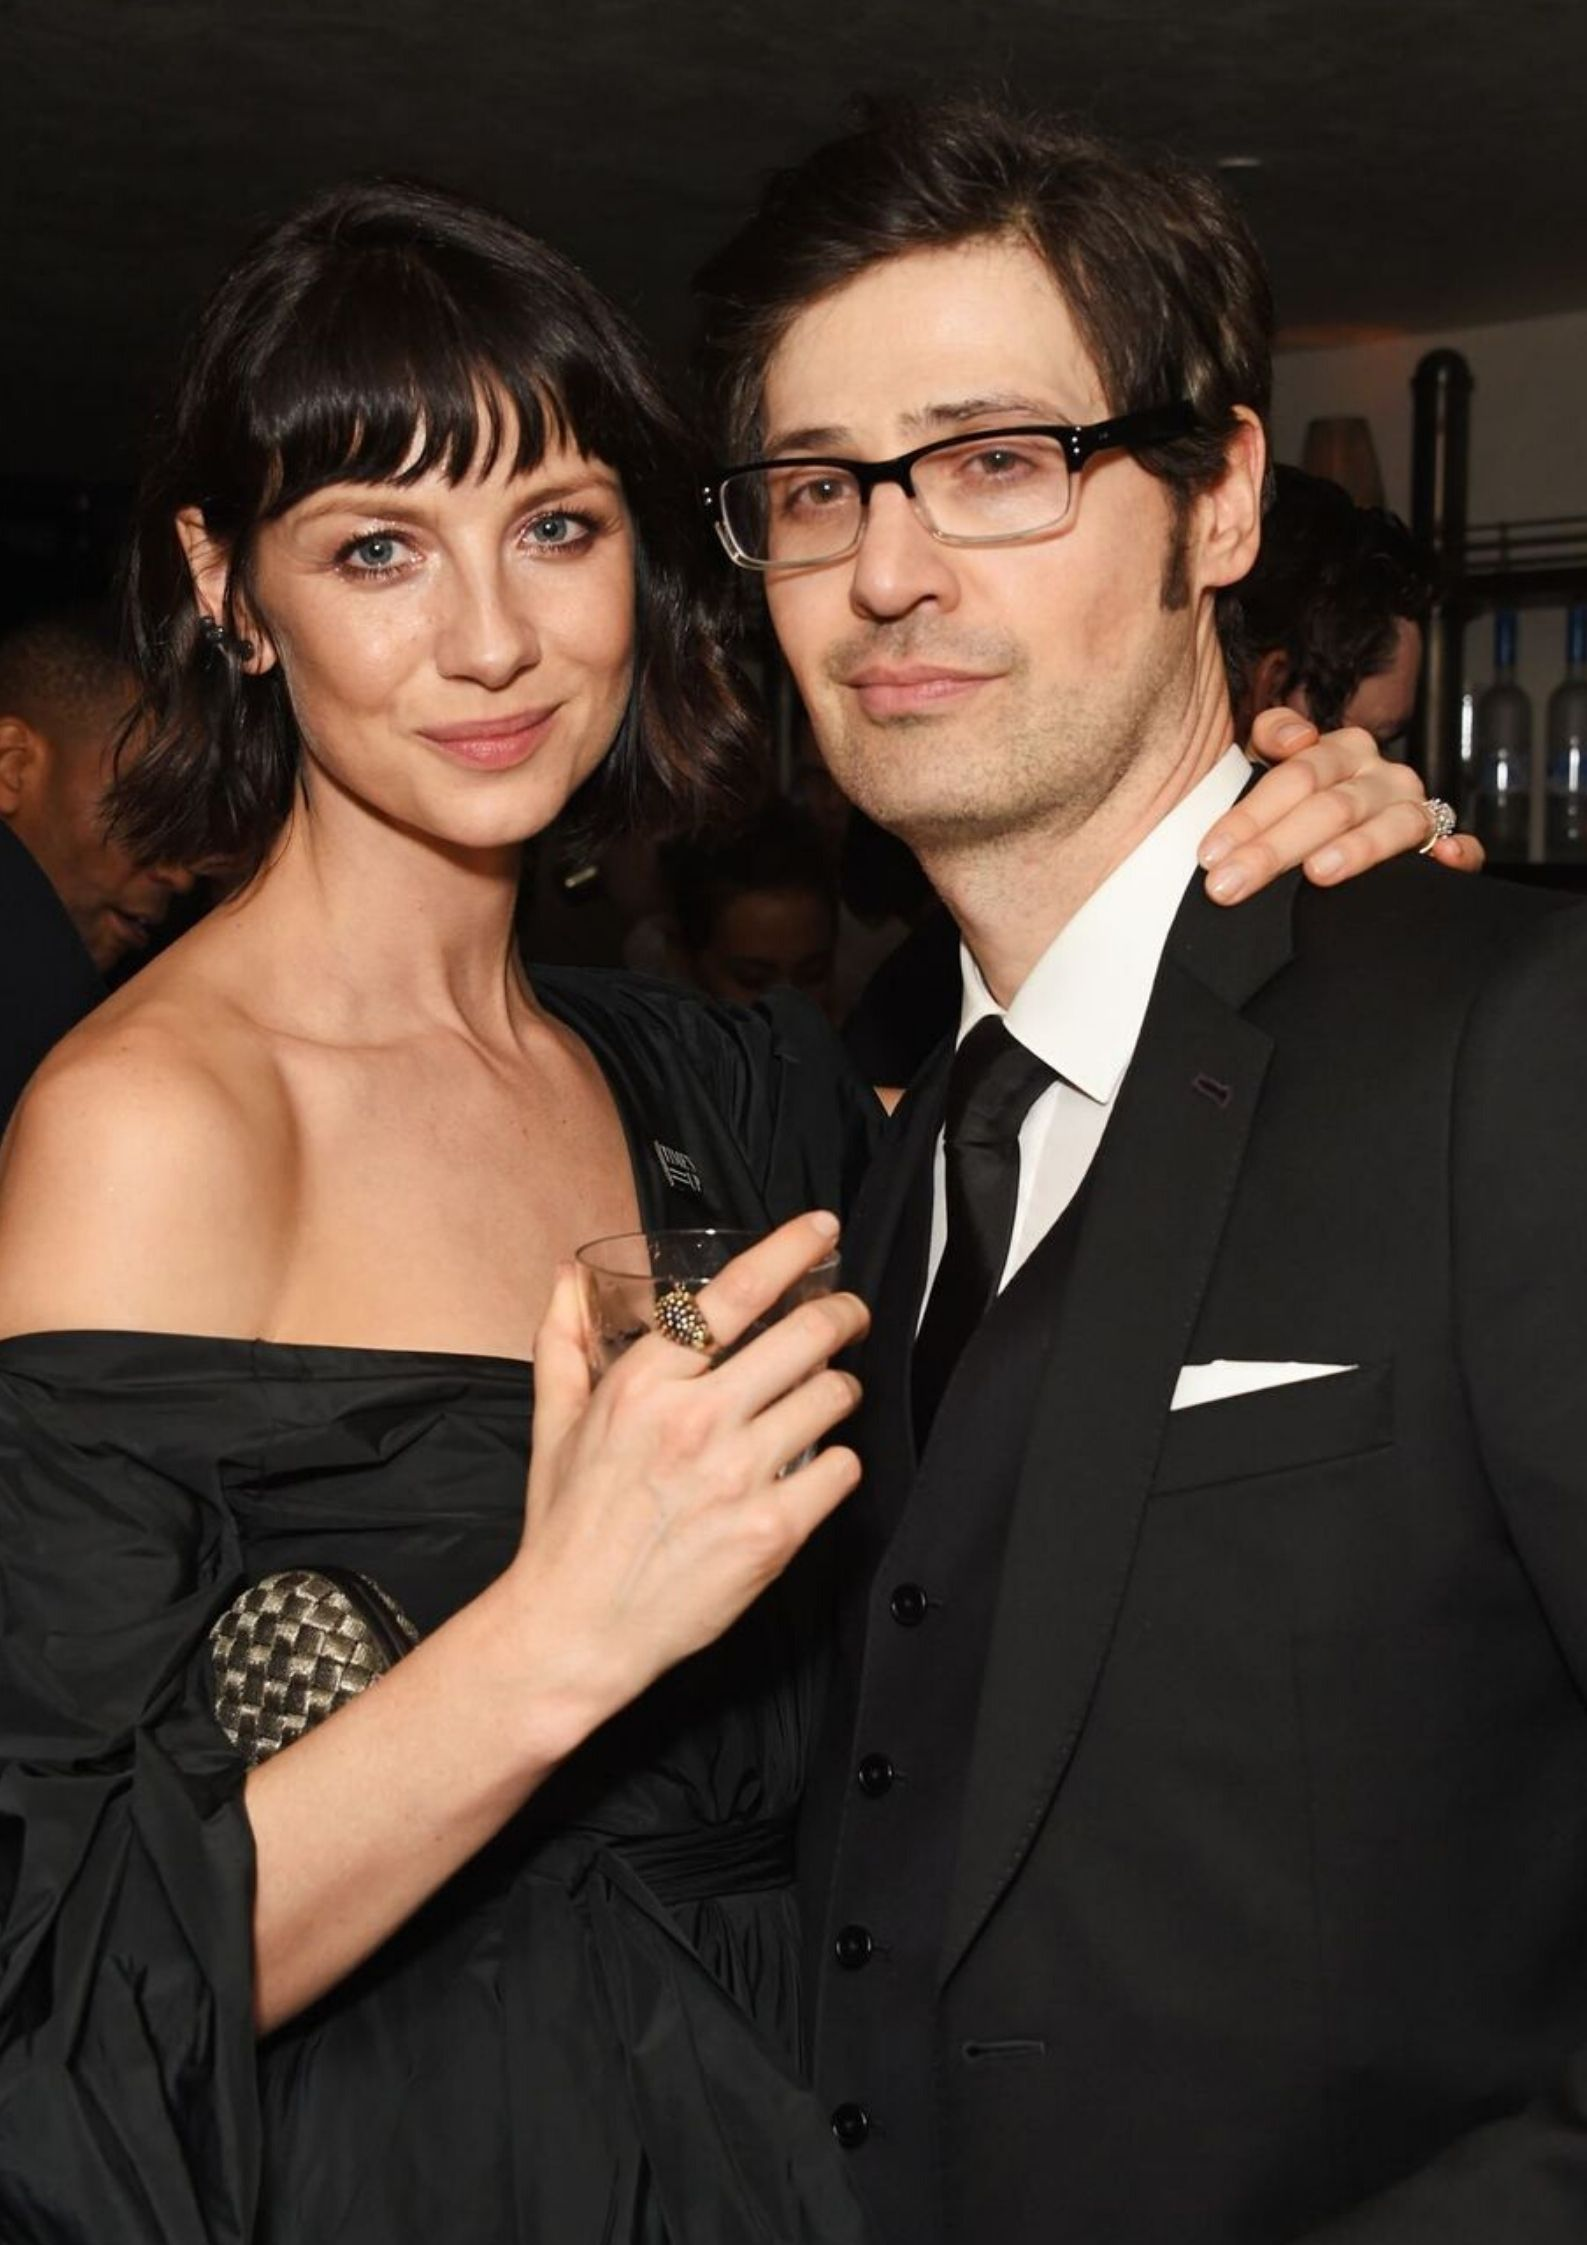 Caitriona Balfe and Tony McGill attending the 2018 Golden Globes/Photo:Getty Images